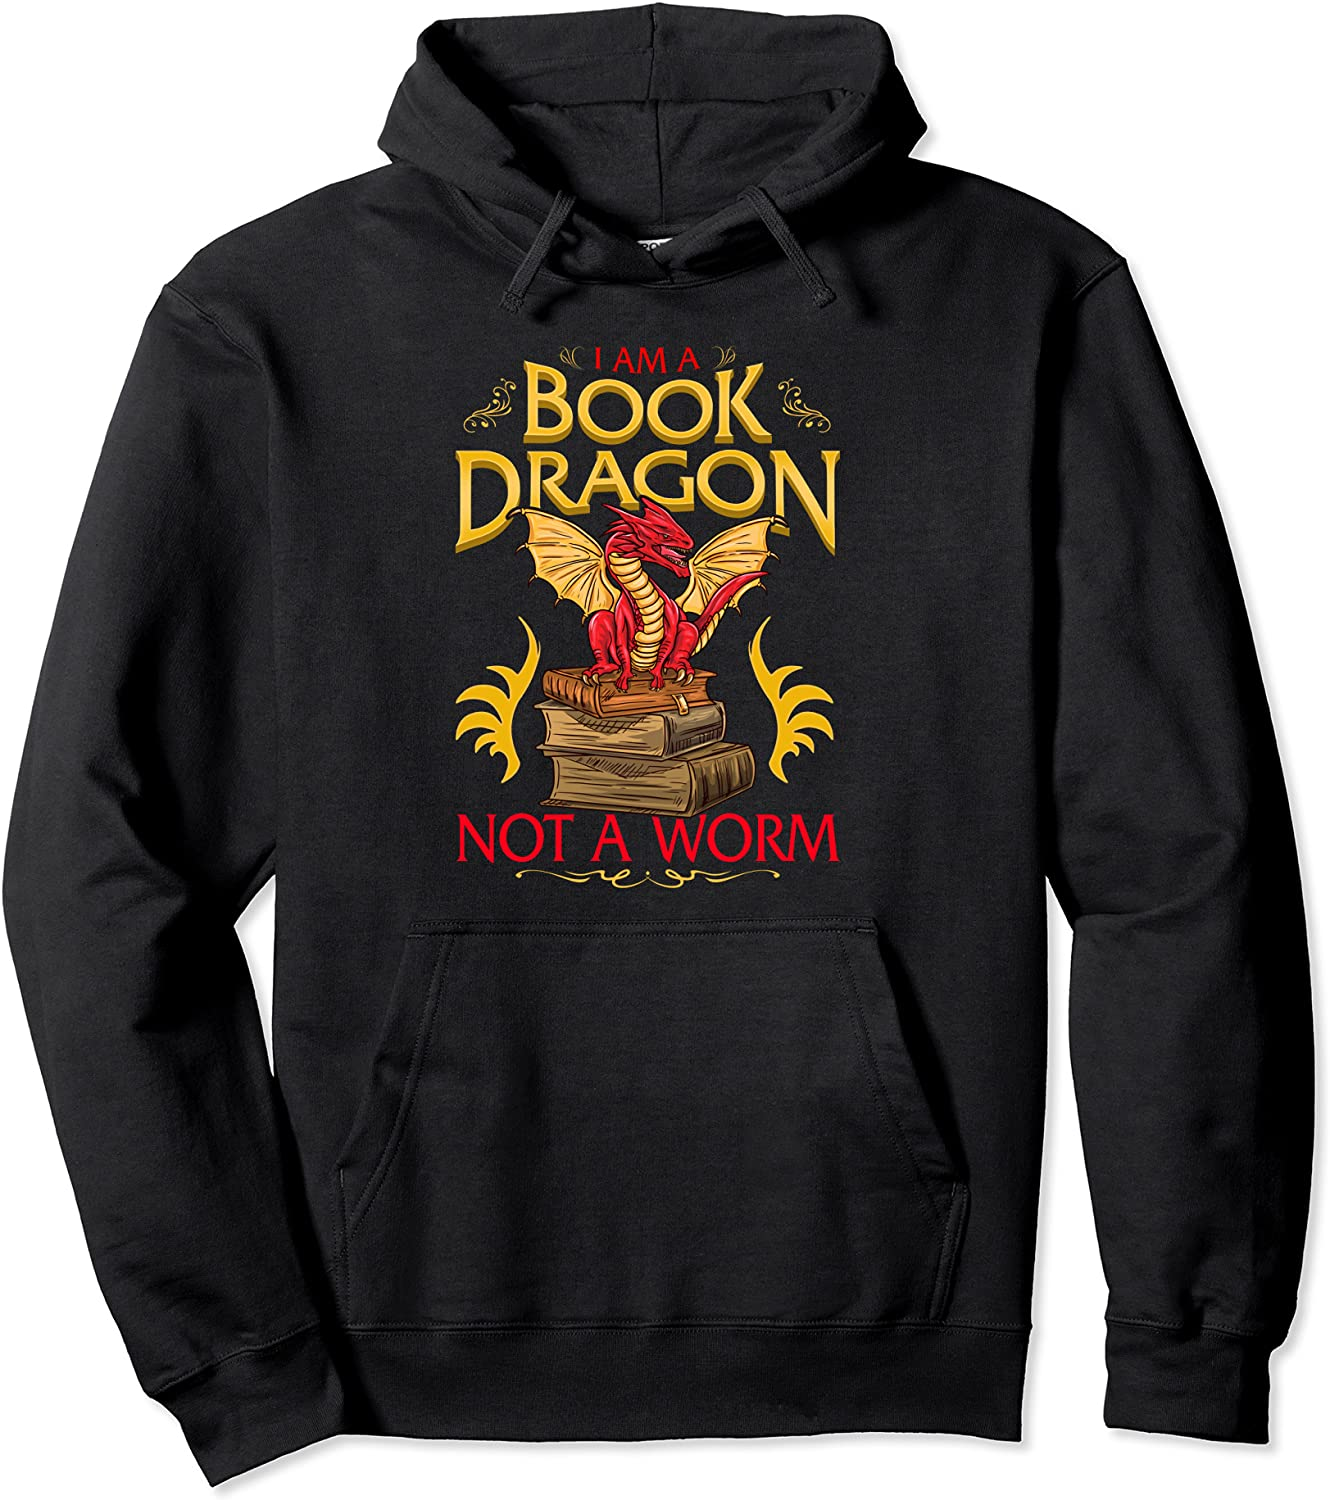 I'm A Book Dragon Not Worm famous Hoodie Reader Funny Gift Max 63% OFF